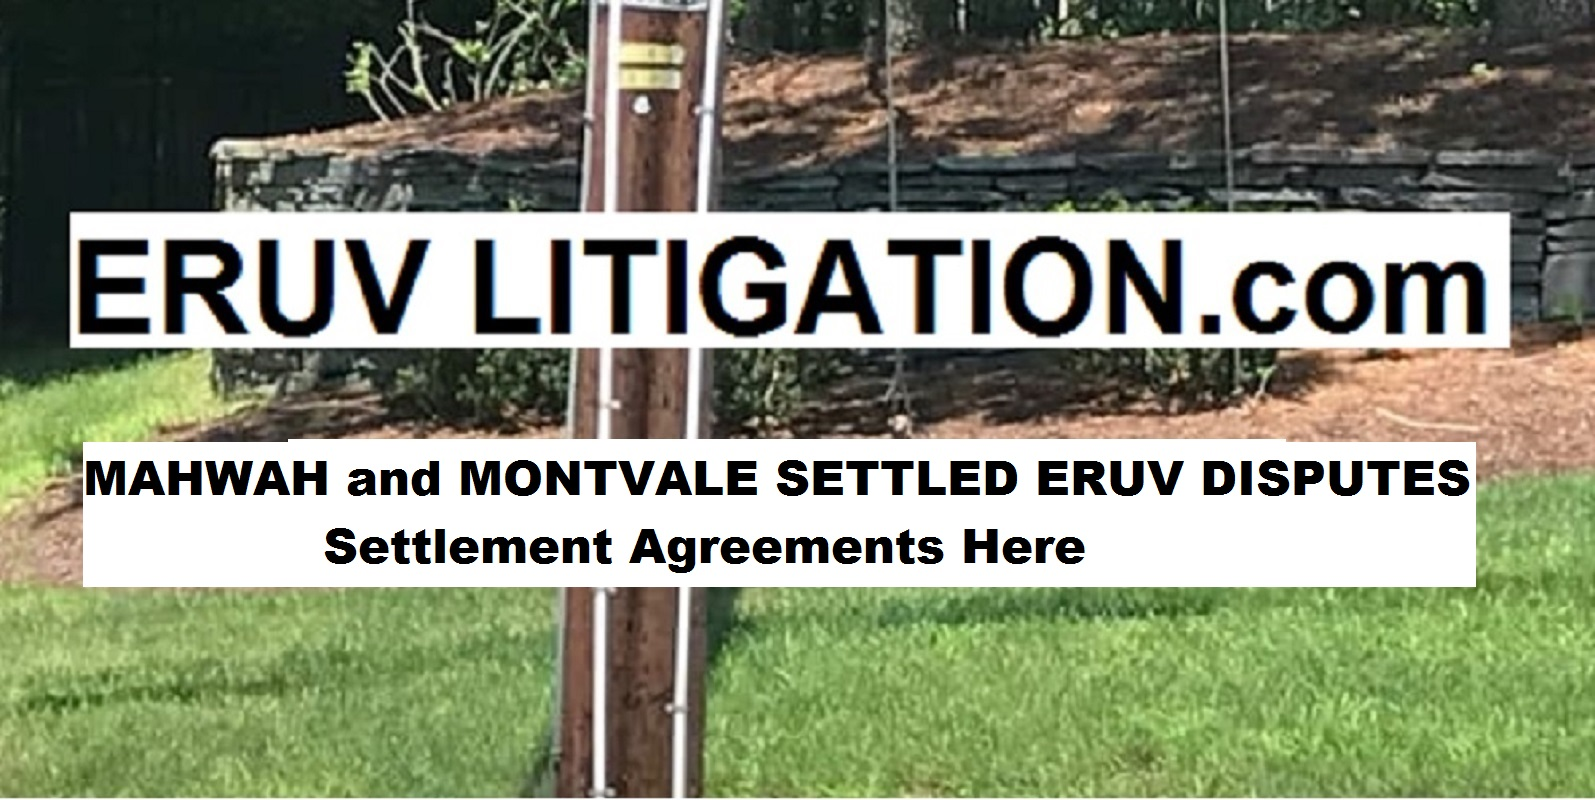 Click here to see the Eruv Litigation Blog.                                                                                                                                              This site tracks current and prior eruv litigation as well as provides timely information to the public.